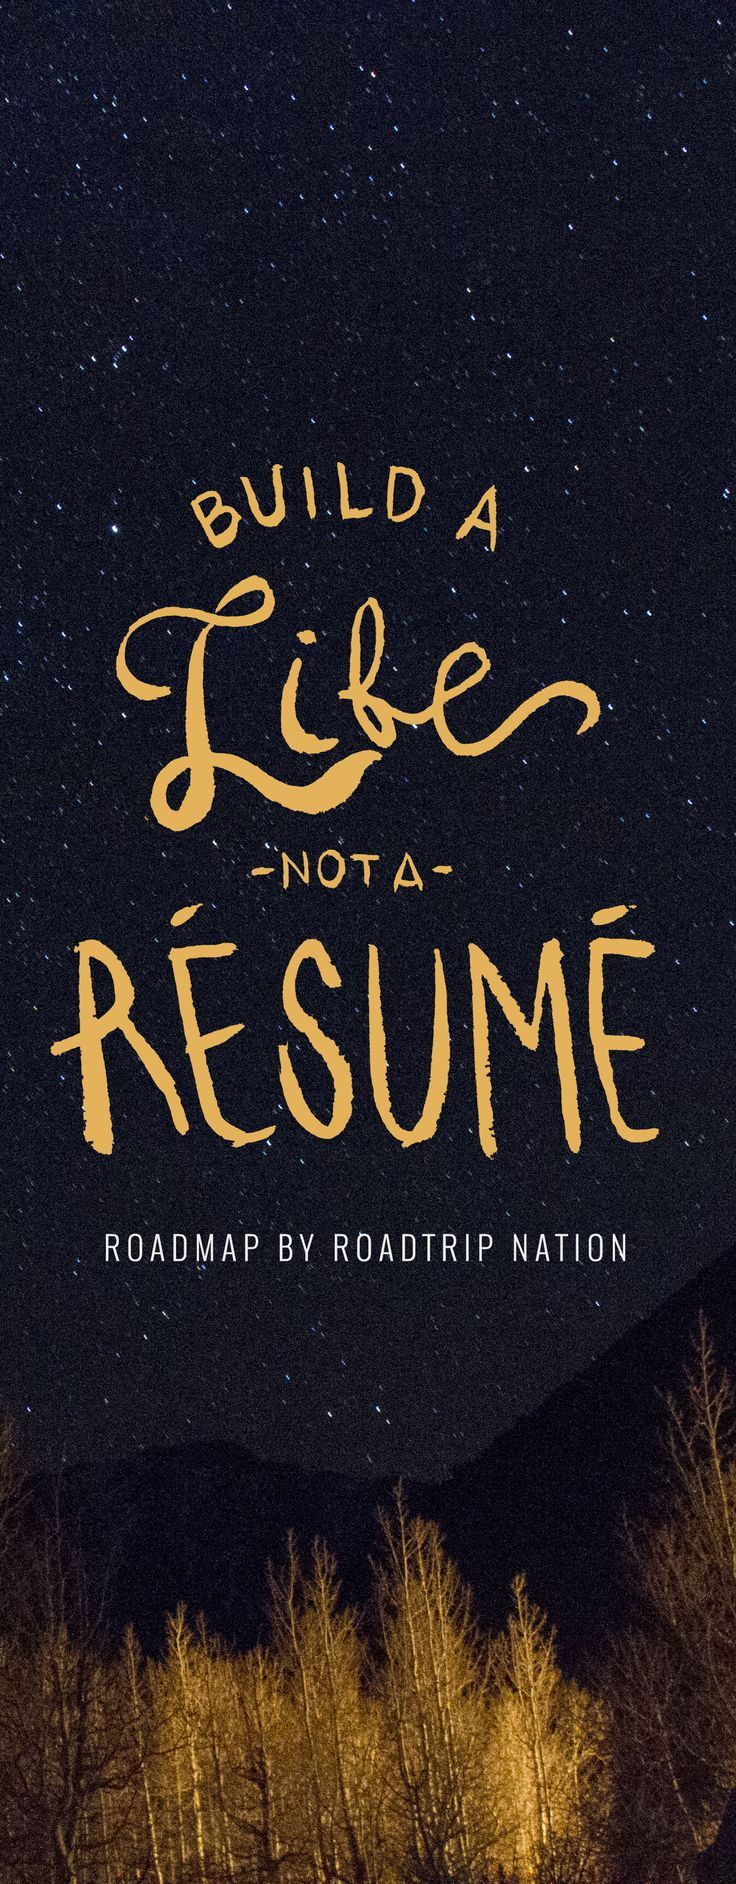 Build a life not a resume Roadmap